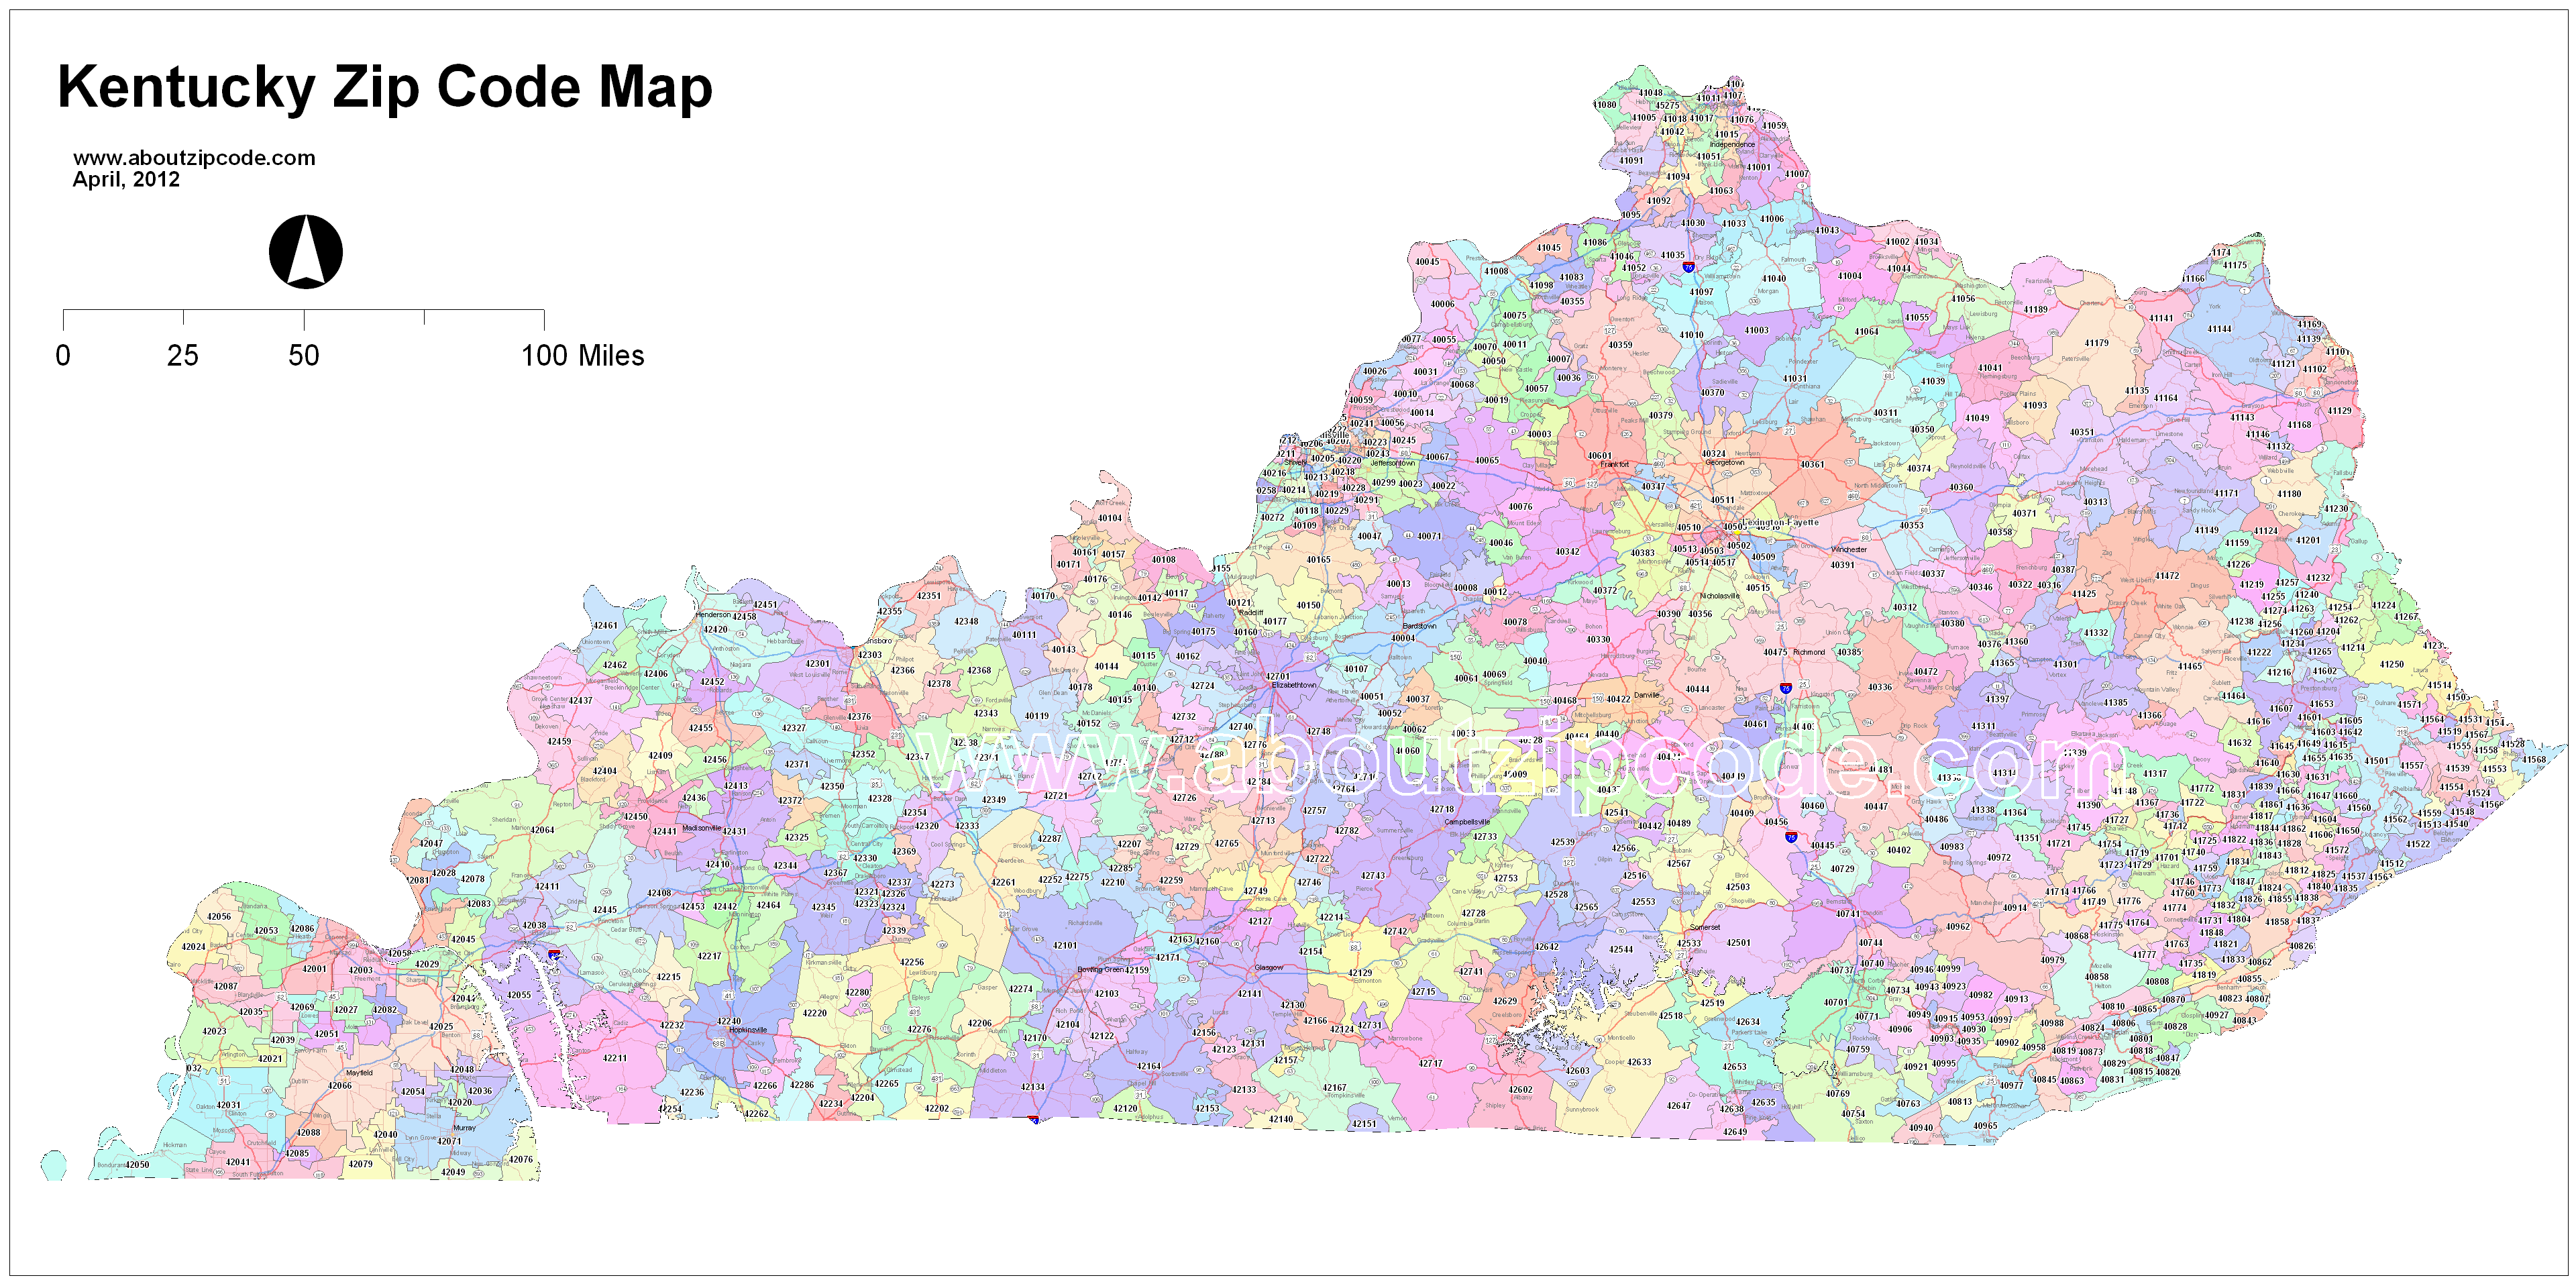 Kentucky Zip Code Maps - Free Kentucky Zip Code Maps on map of kentucky scottsville, map of kentucky berea, map of kentucky london, map of kentucky ashland, map of kentucky murray, map of kentucky paducah, map of kentucky paris, map of kentucky derby, map of kentucky lexington, map of kentucky owensboro, map of kentucky richmond,